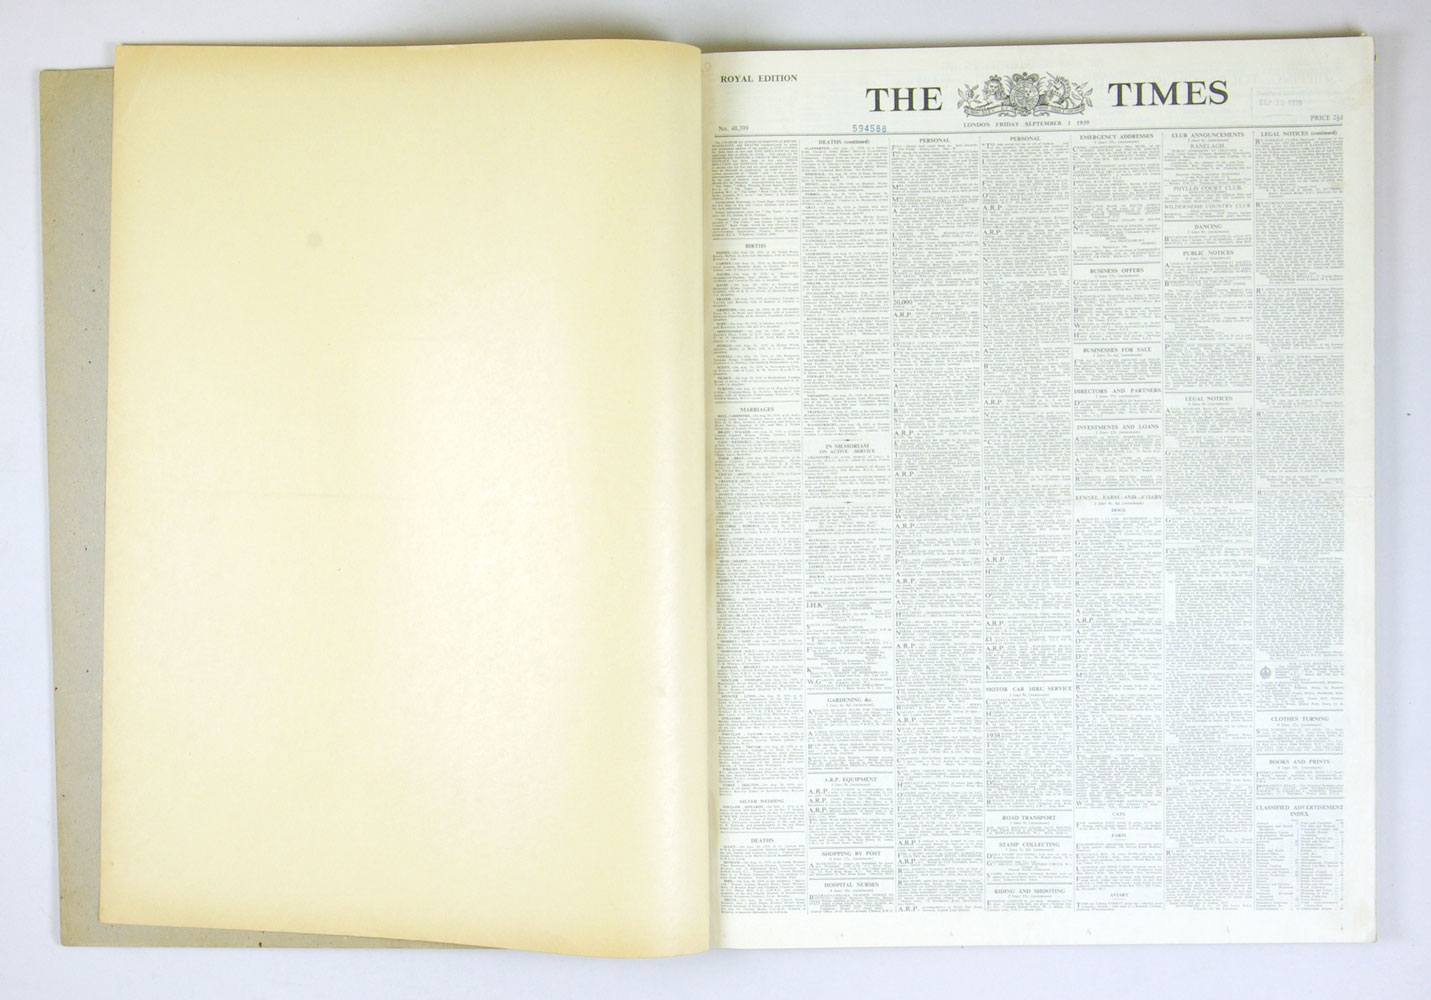 LONDON Times Historical News Paper 1939 September The Beginning of WW II Bound Book Set of 2